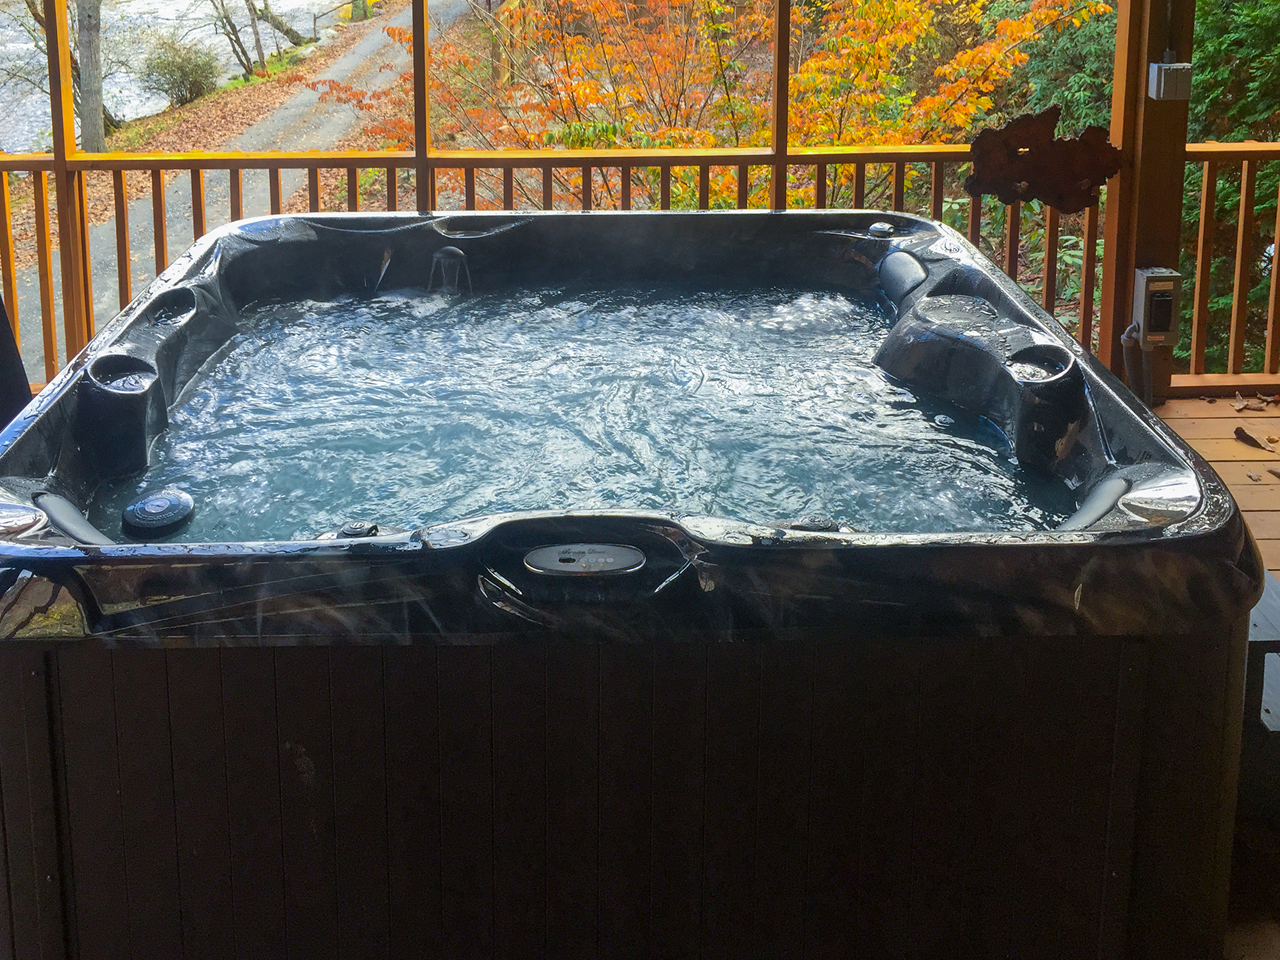 A river paradise hot tub on coverd deck overlooking tucasegee river